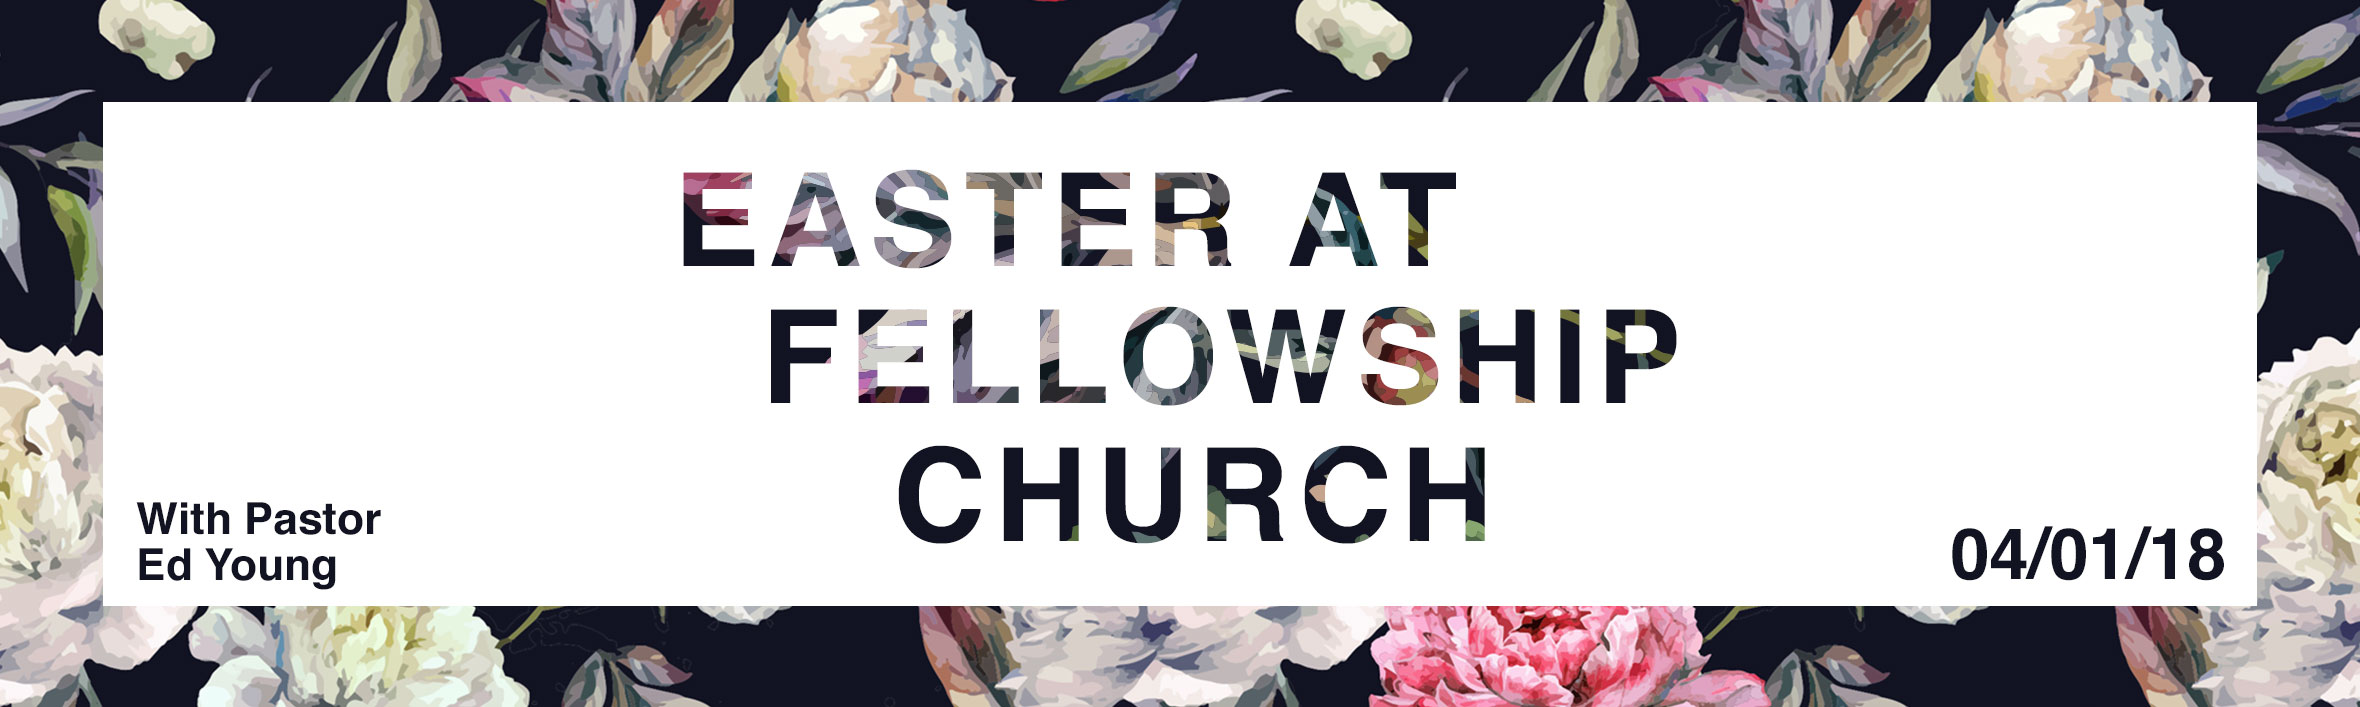 Easter at Fellowship Church